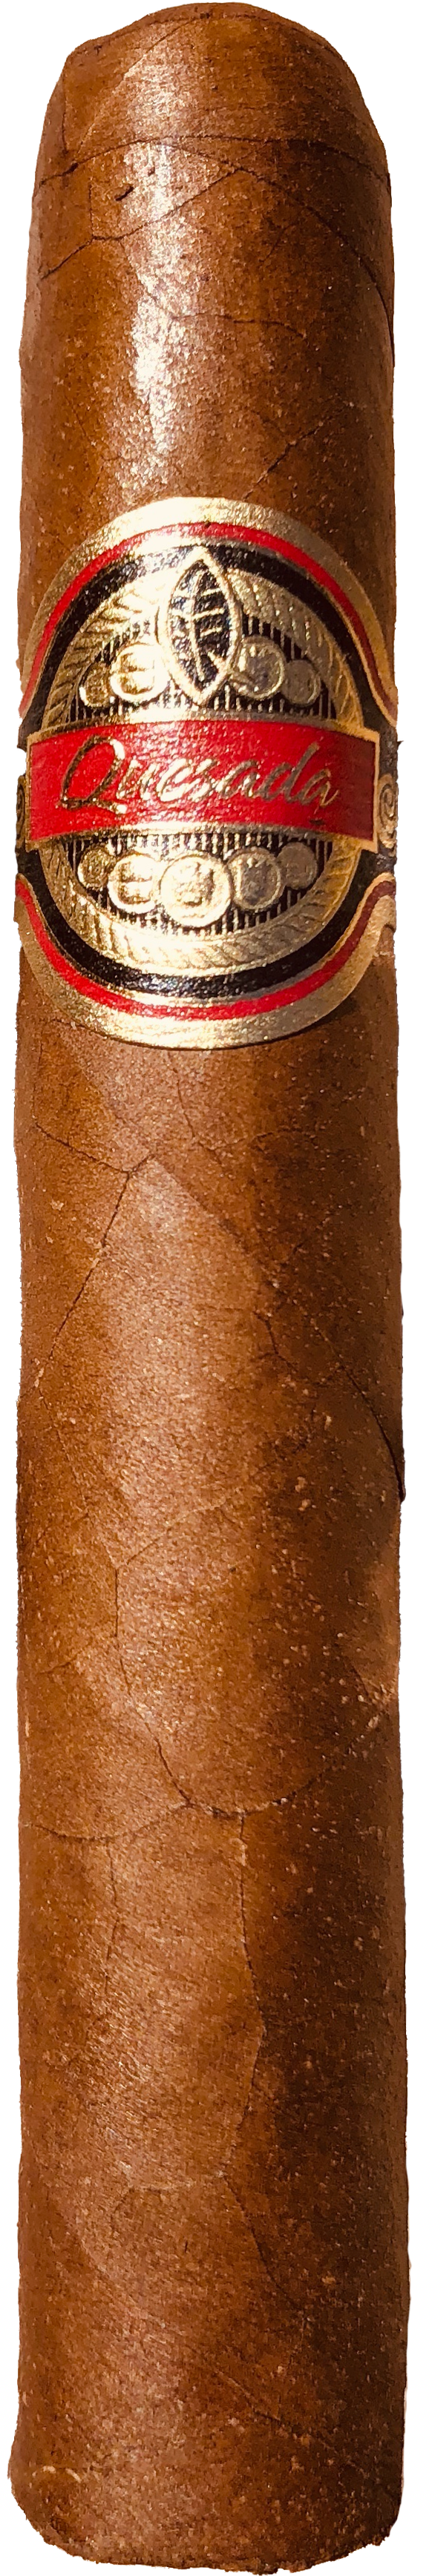 99cigars-quesada-1974-robusto-2